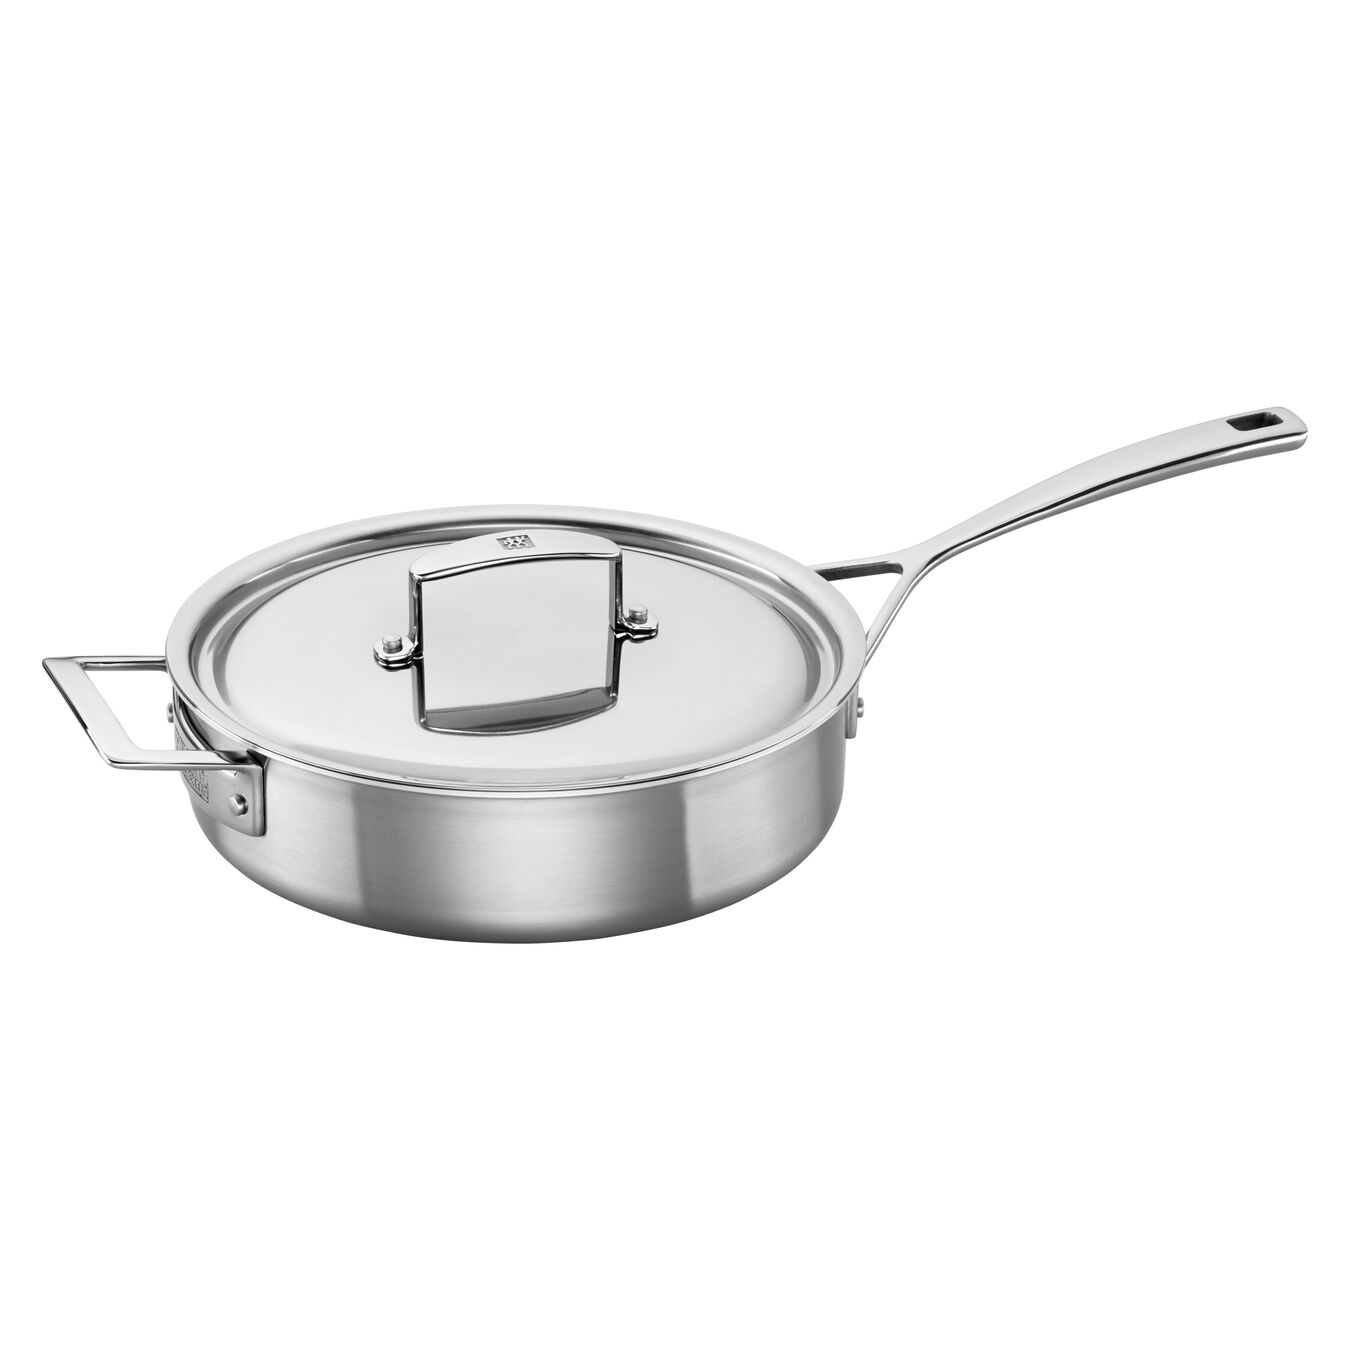 24 cm 18/10 Stainless Steel Saute pan with lid,,large 1